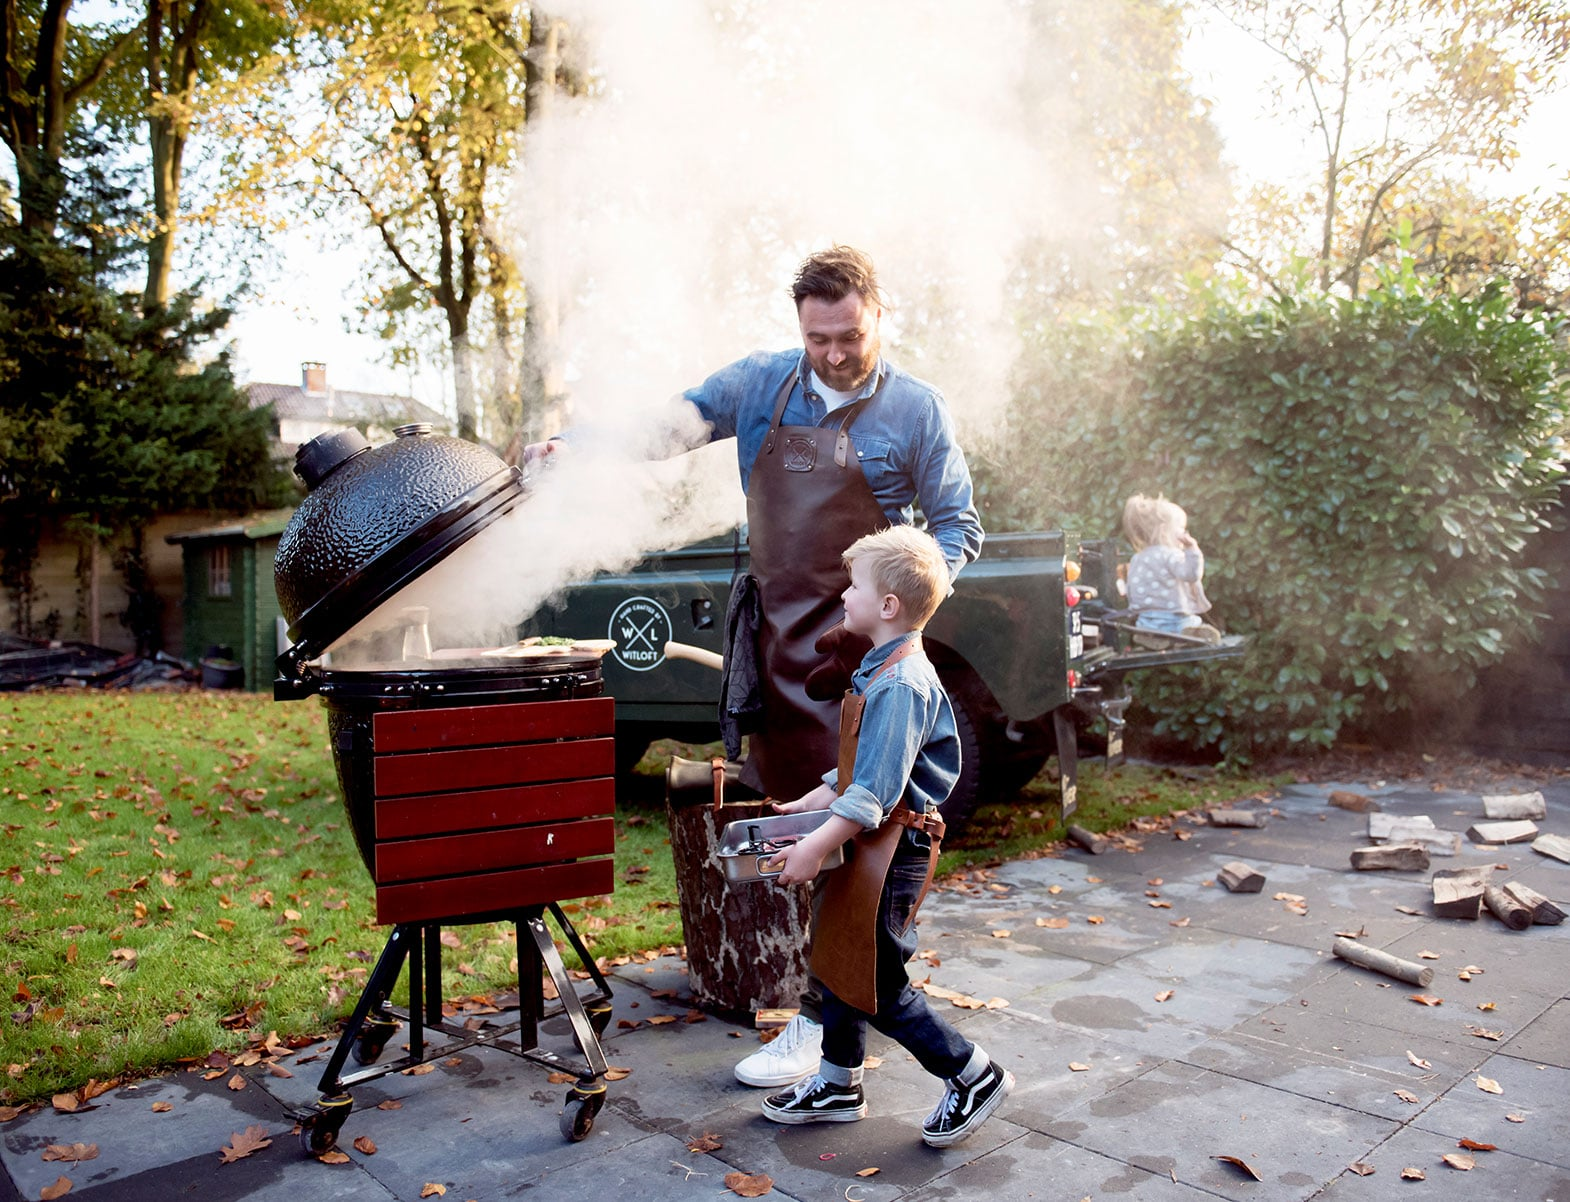 WITLOFT Kids in the backyard Story son helping dad grilling meat